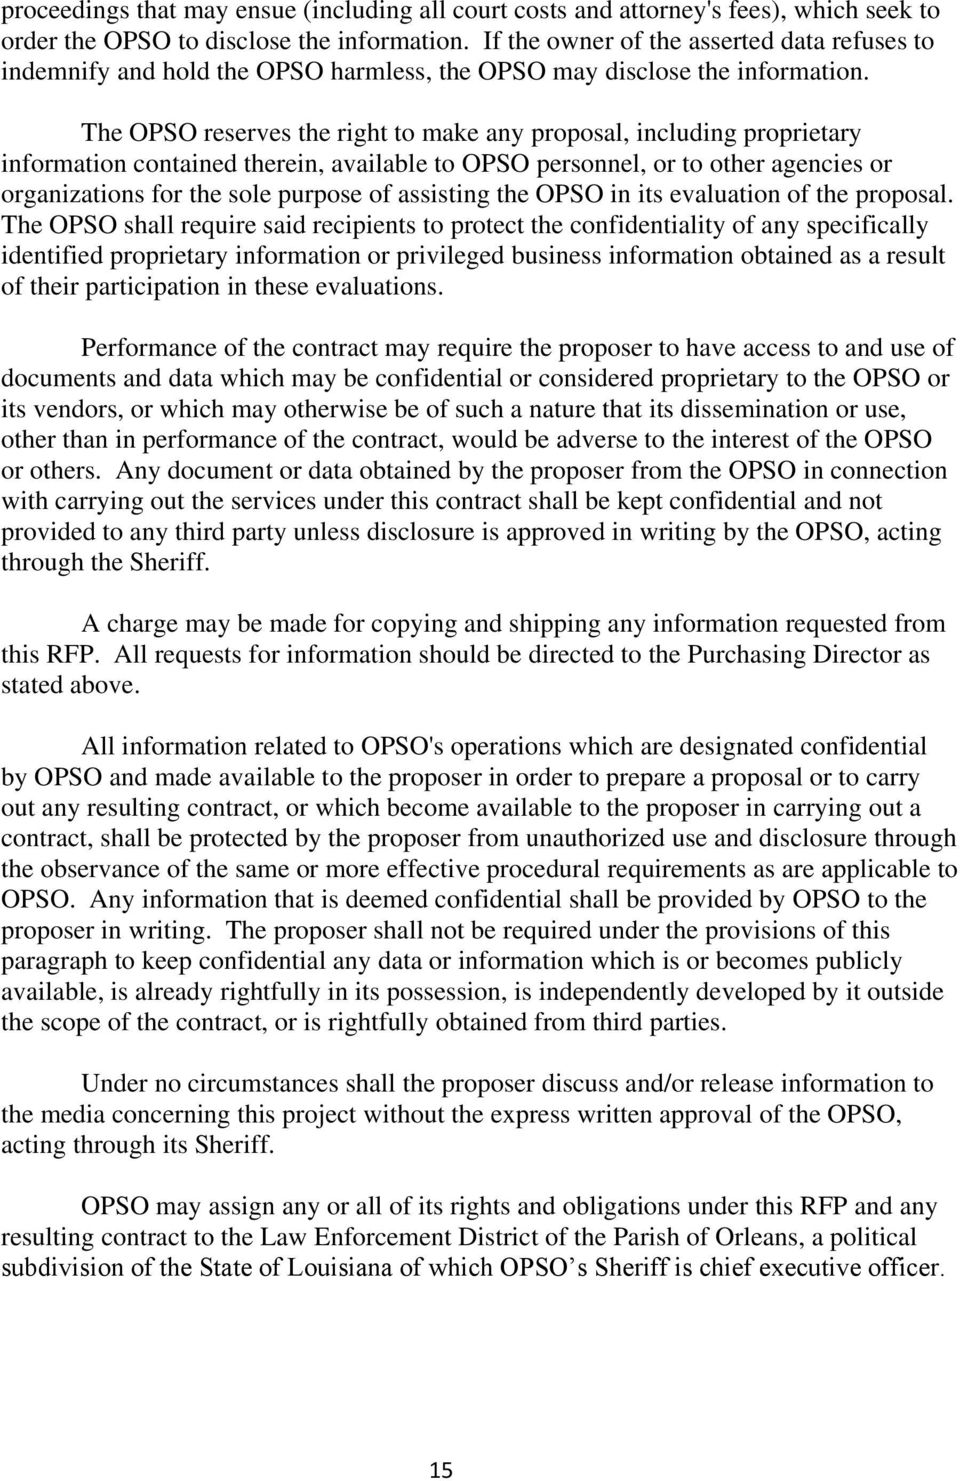 The OPSO reserves the right to make any proposal, including proprietary information contained therein, available to OPSO personnel, or to other agencies or organizations for the sole purpose of